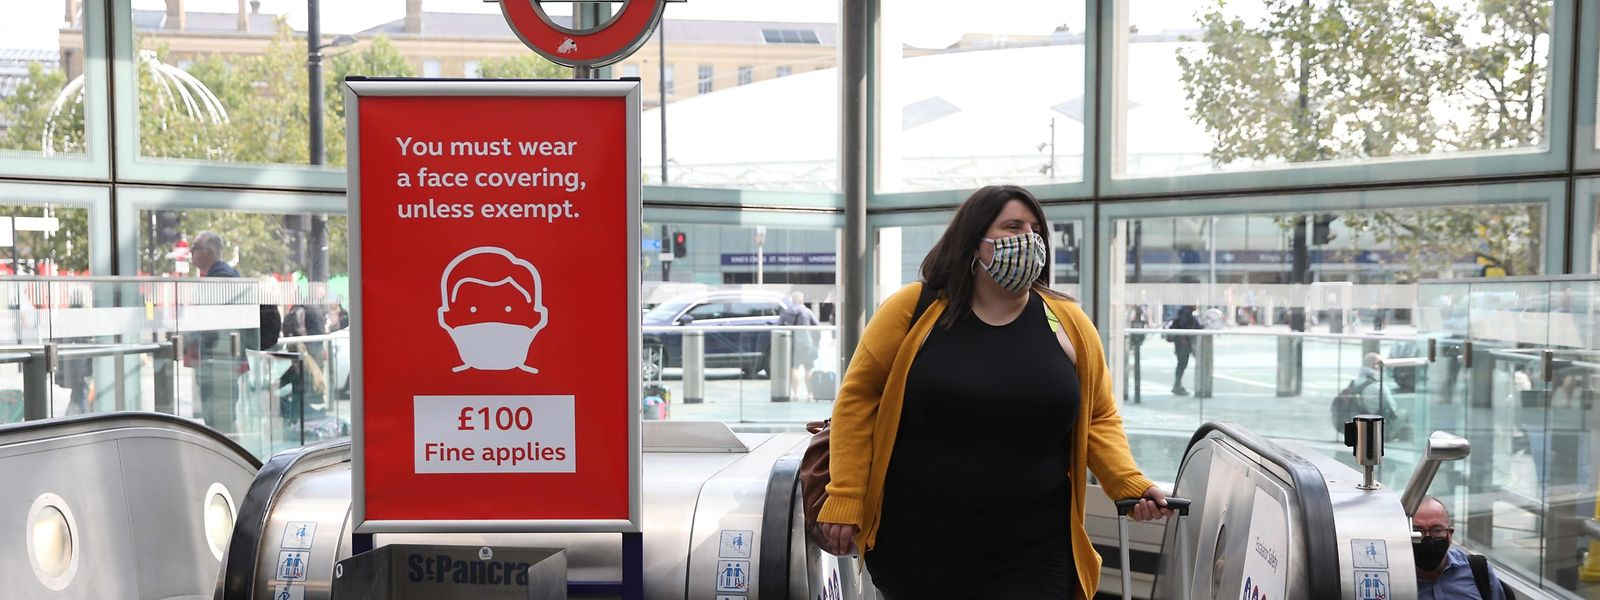 A woman wearing a protective face covering passes a poster warning of fines for not wearing face coverings as she steps off the escalator at St Pancras station in London on September 11, 2020. (Photo by ISABEL INFANTES / AFP)